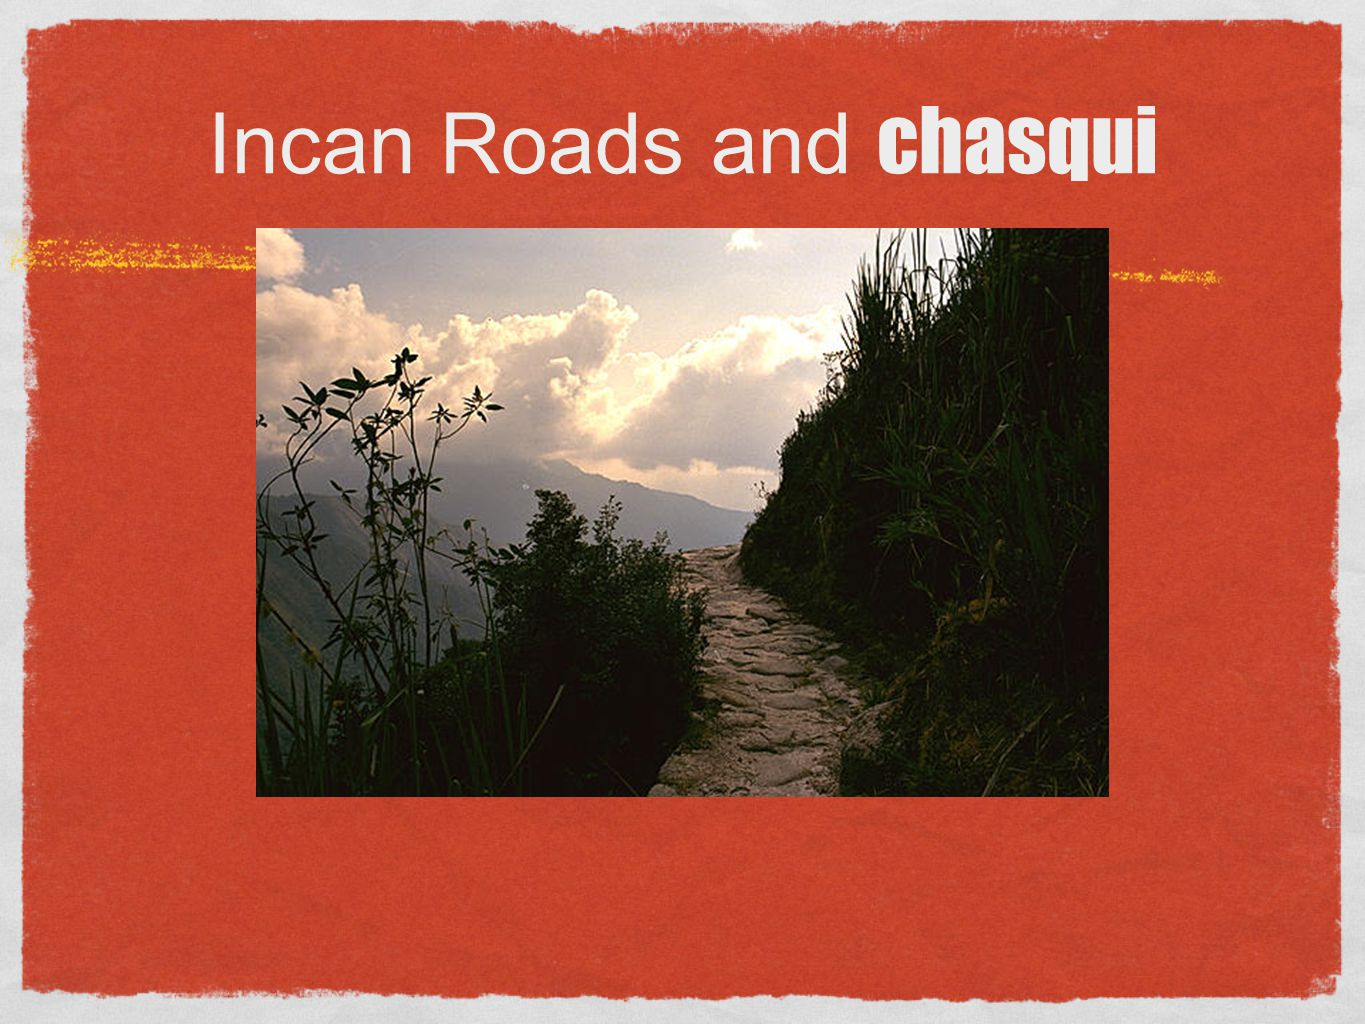 Incan Roads and chasqui